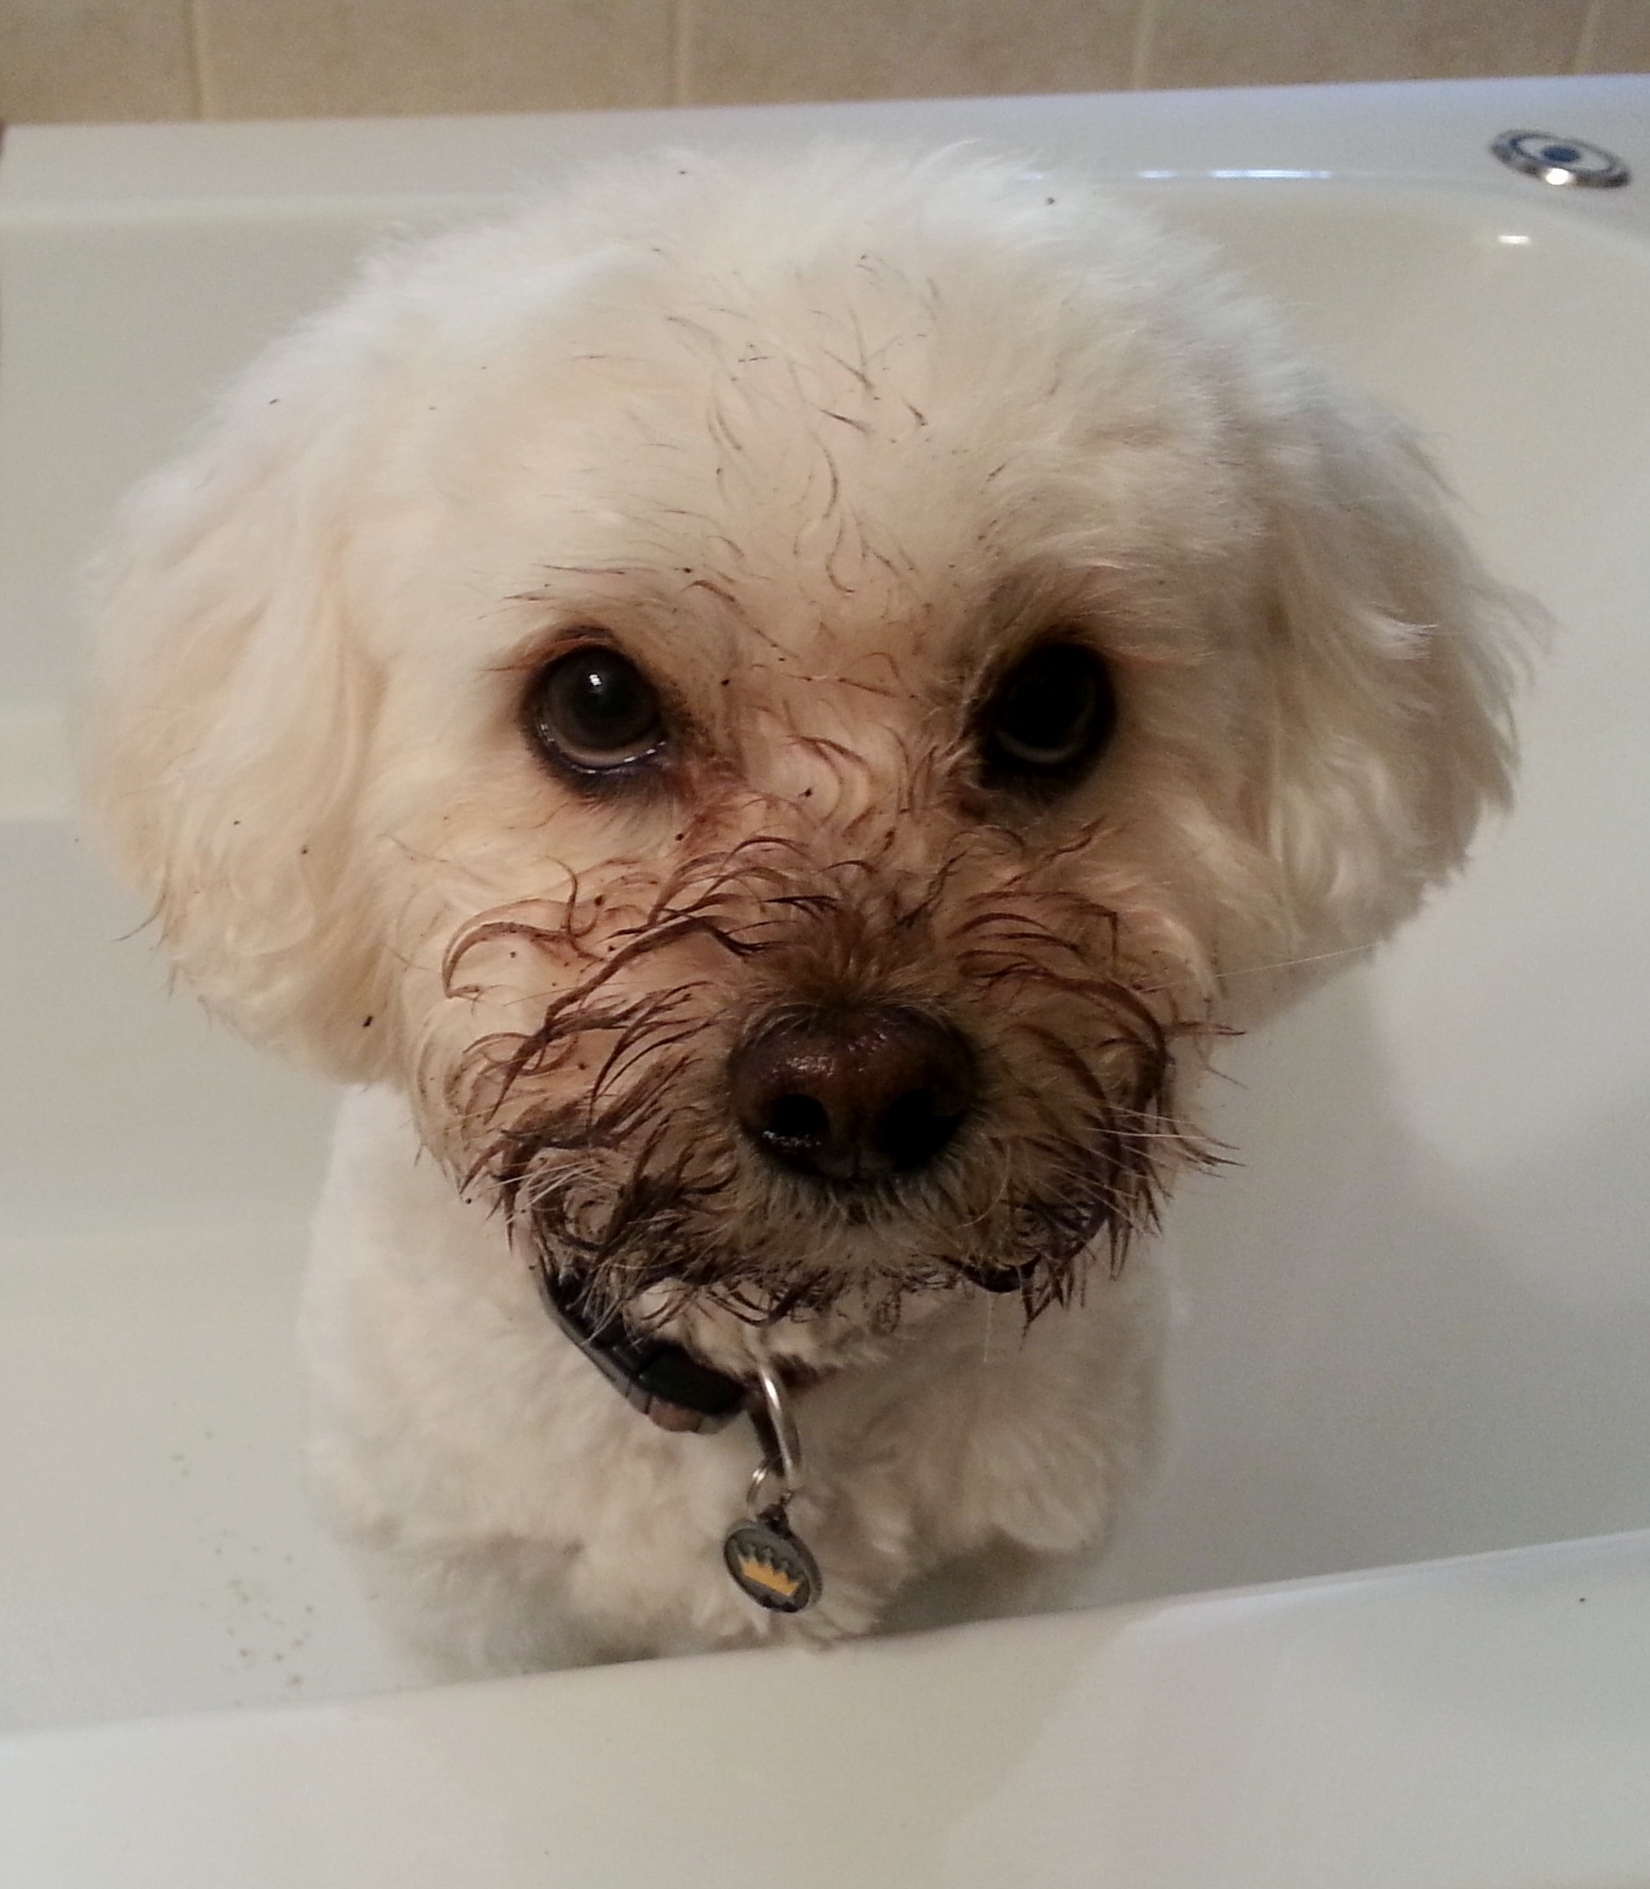 guilty looking, dirty faced boy